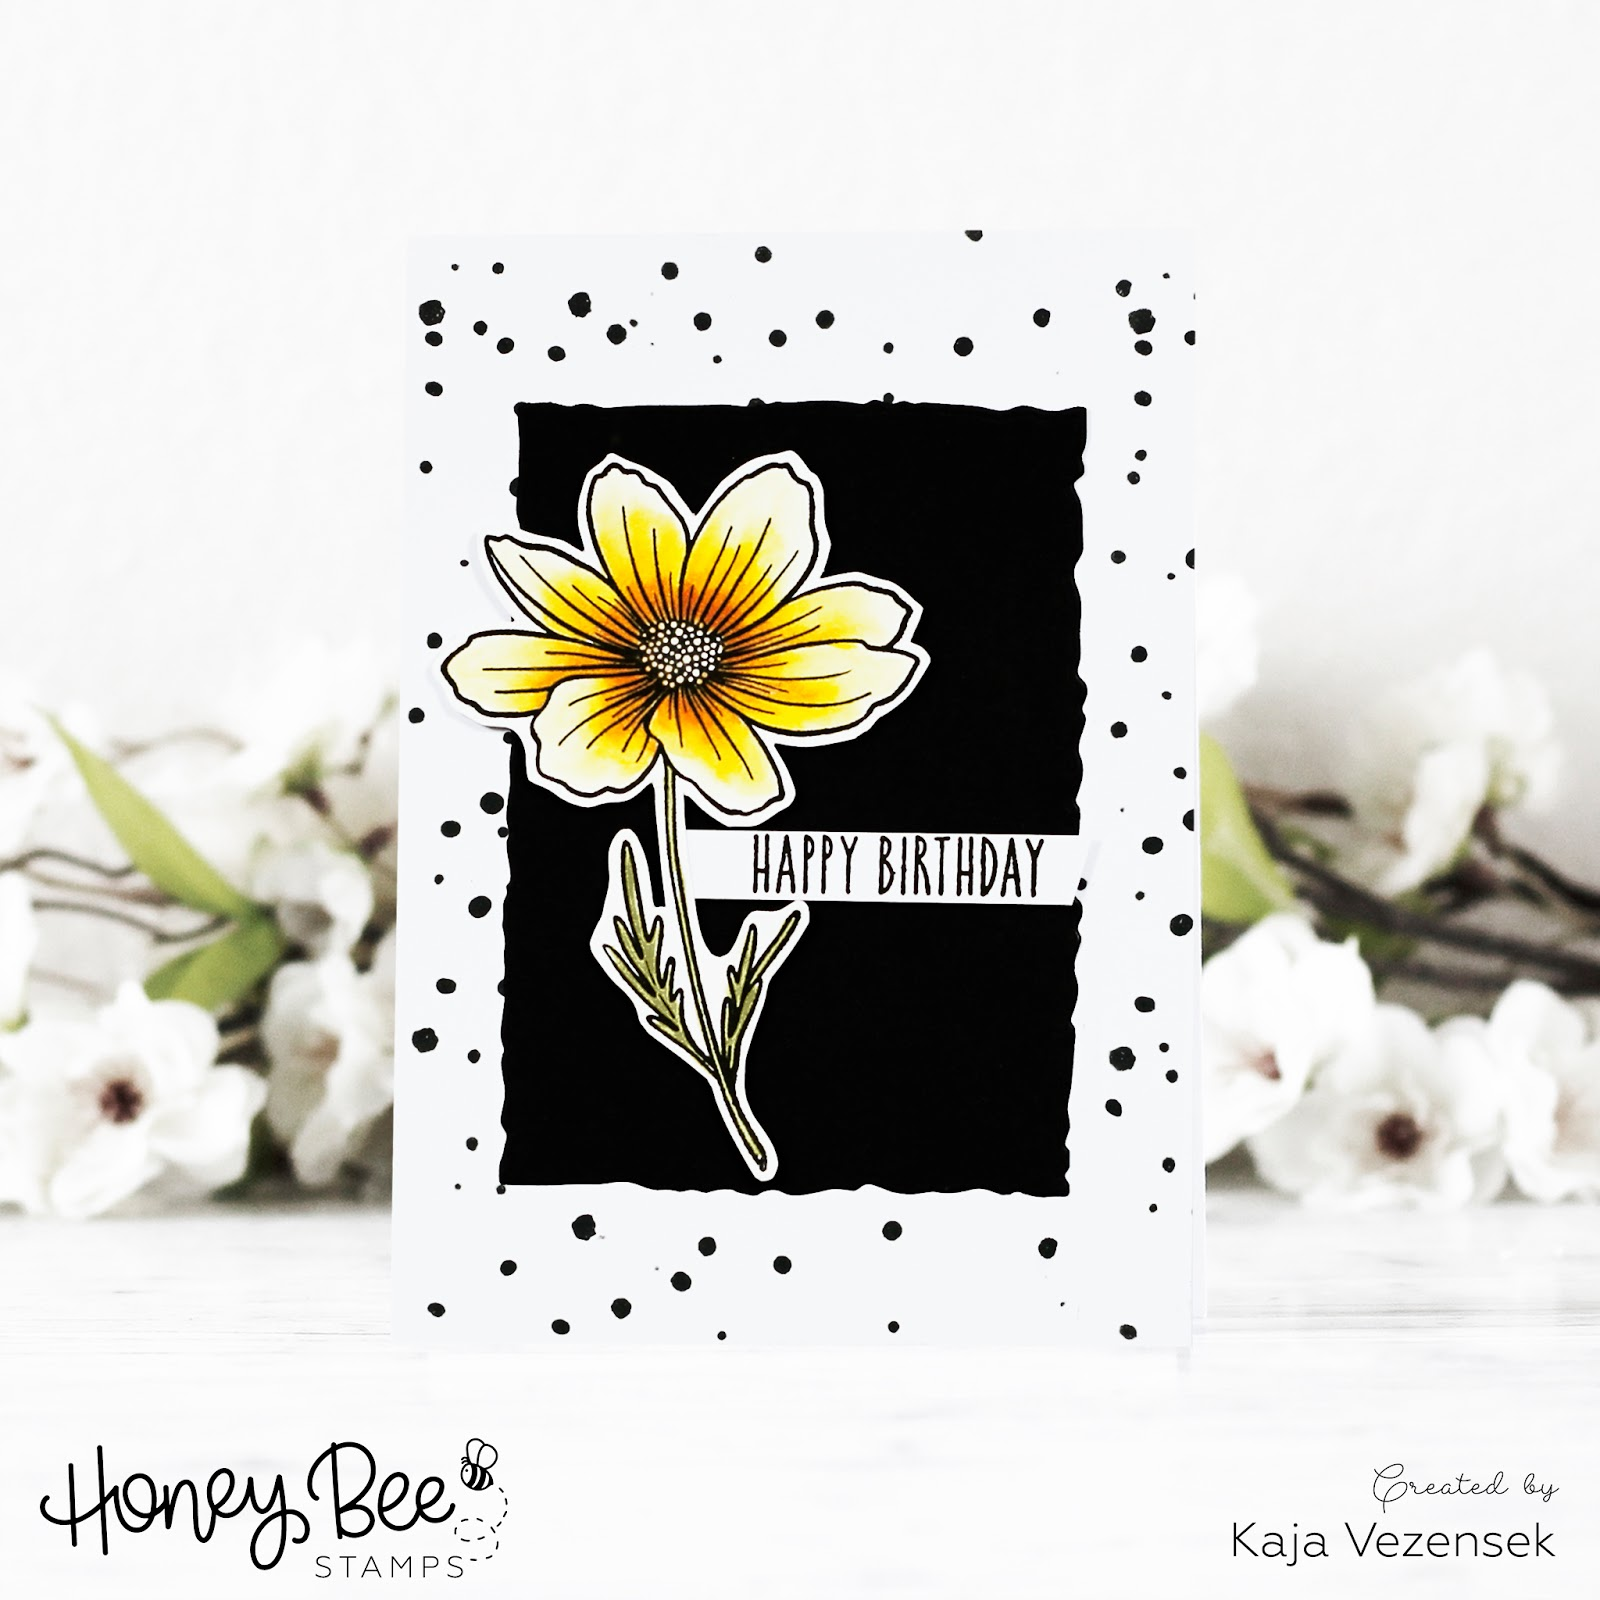 Stenciled background | HONEY BEE